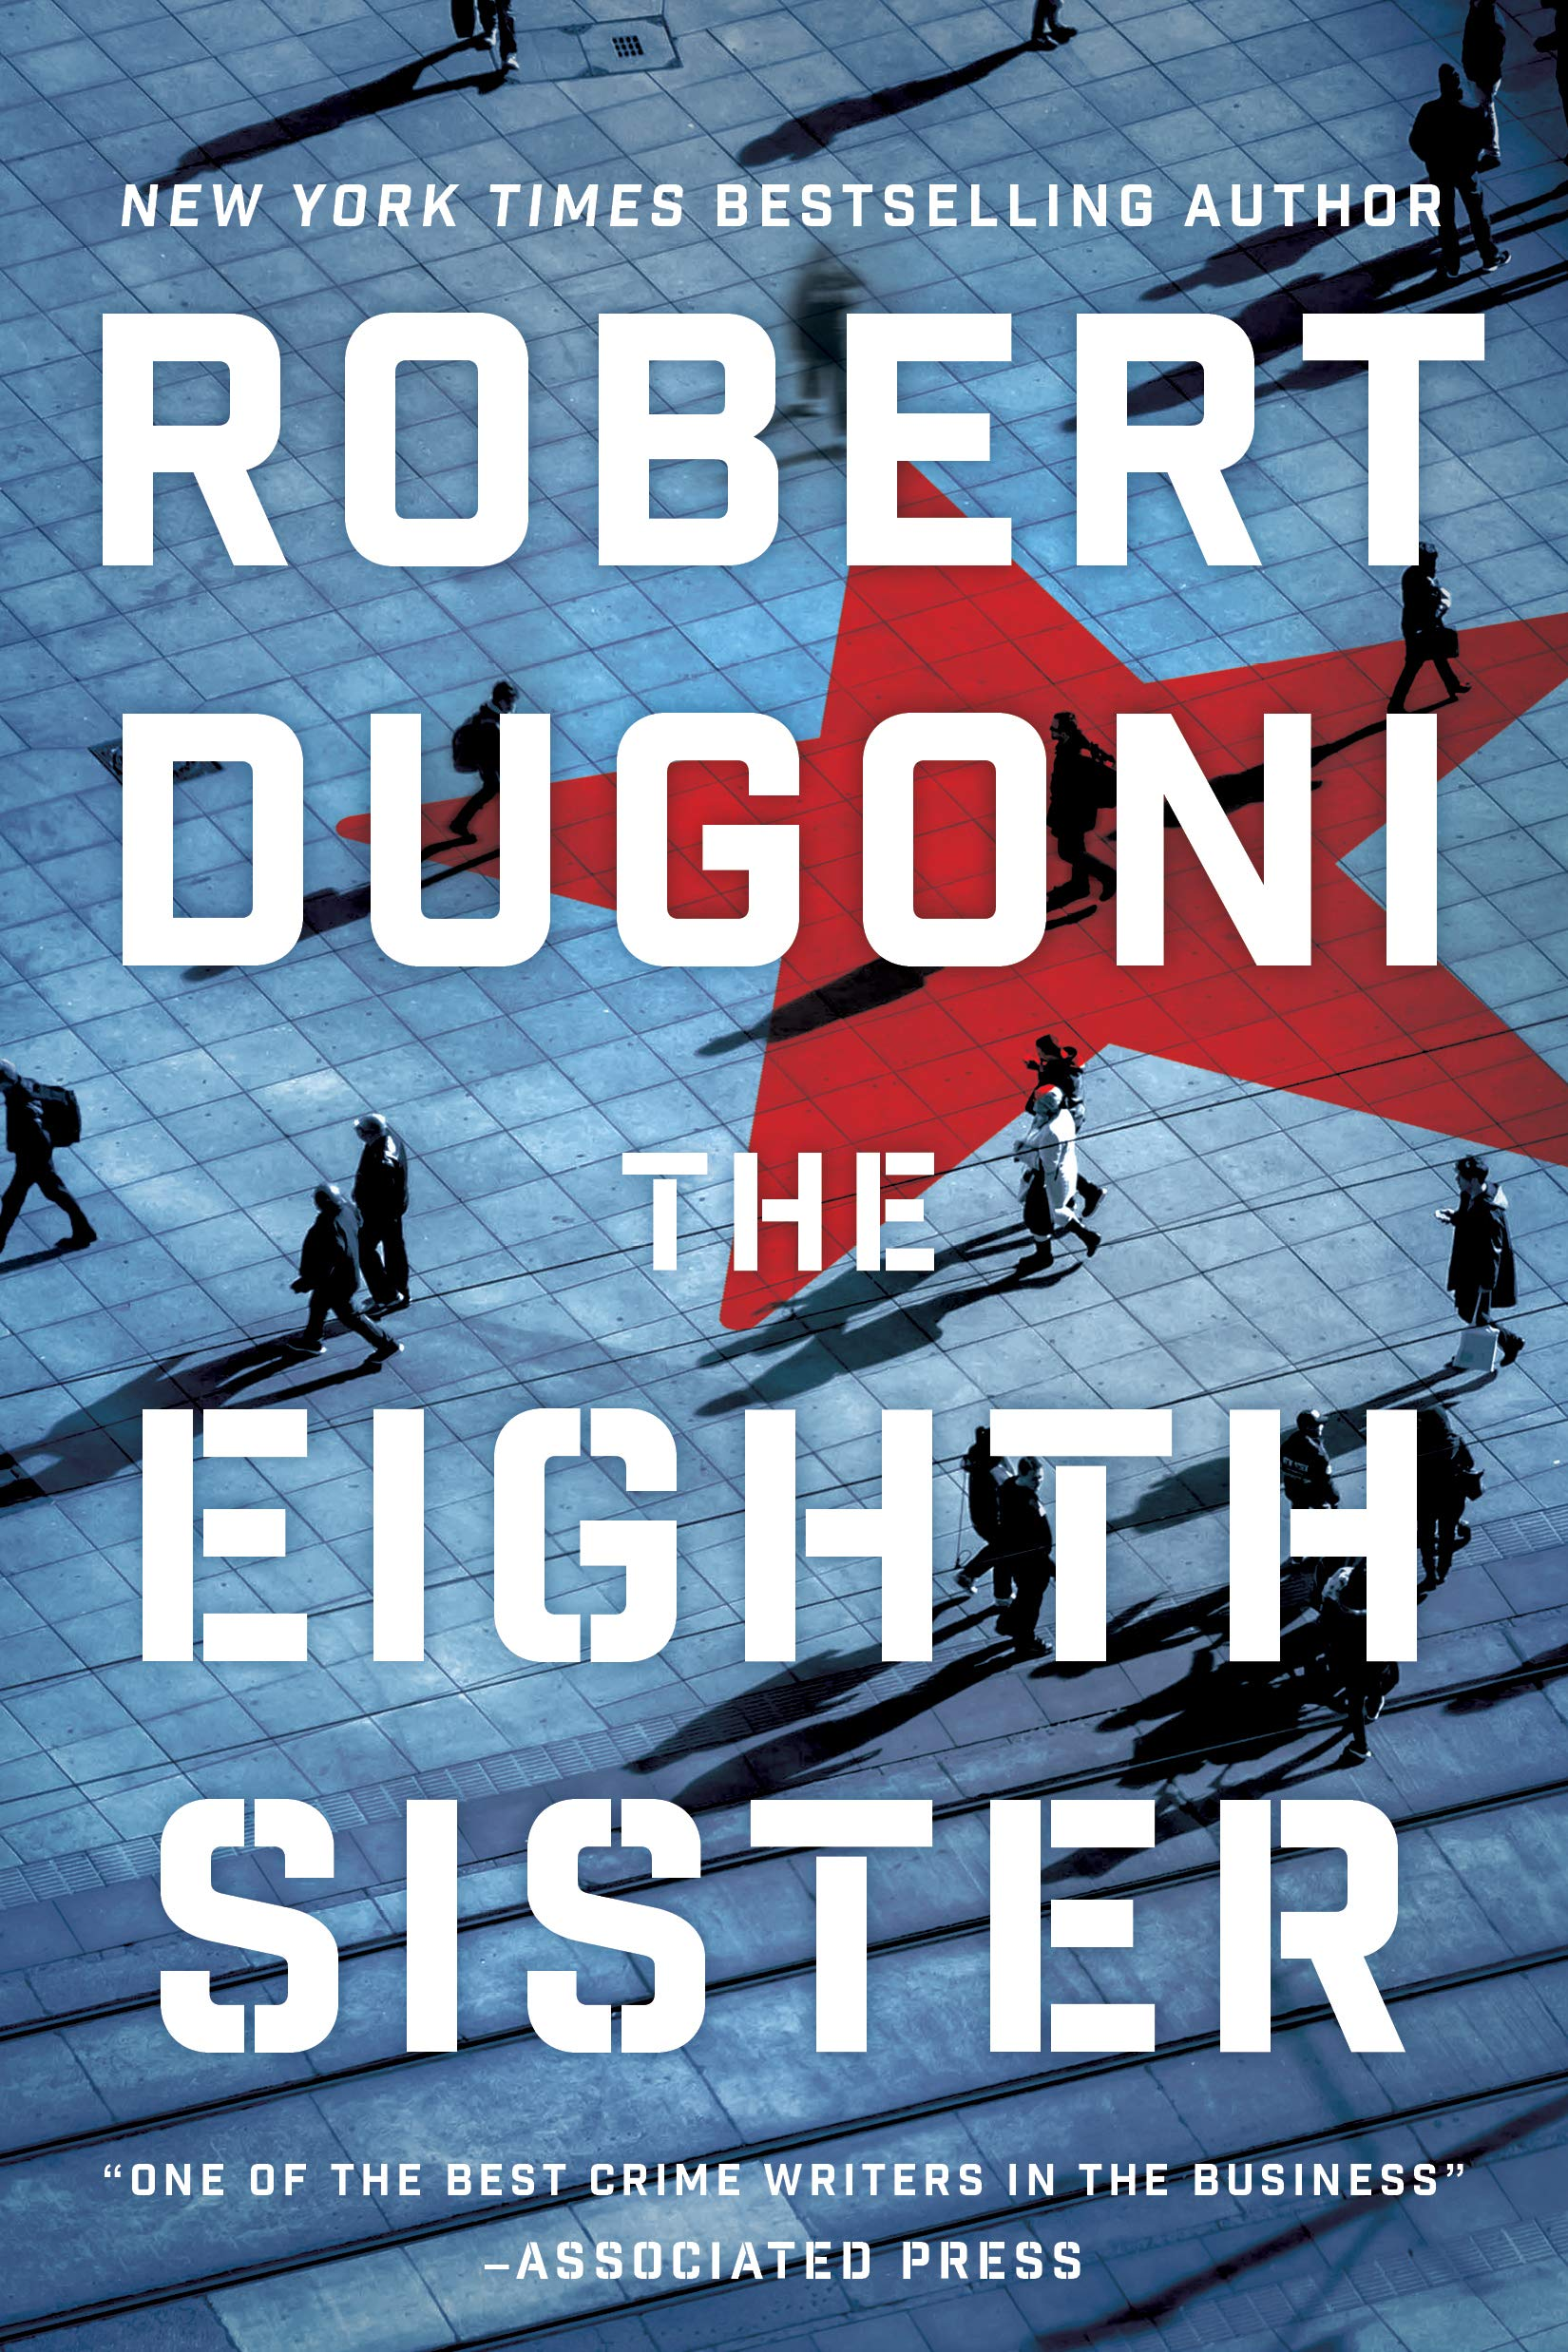 THE EIGHTH SISTER by Robert Dugoni